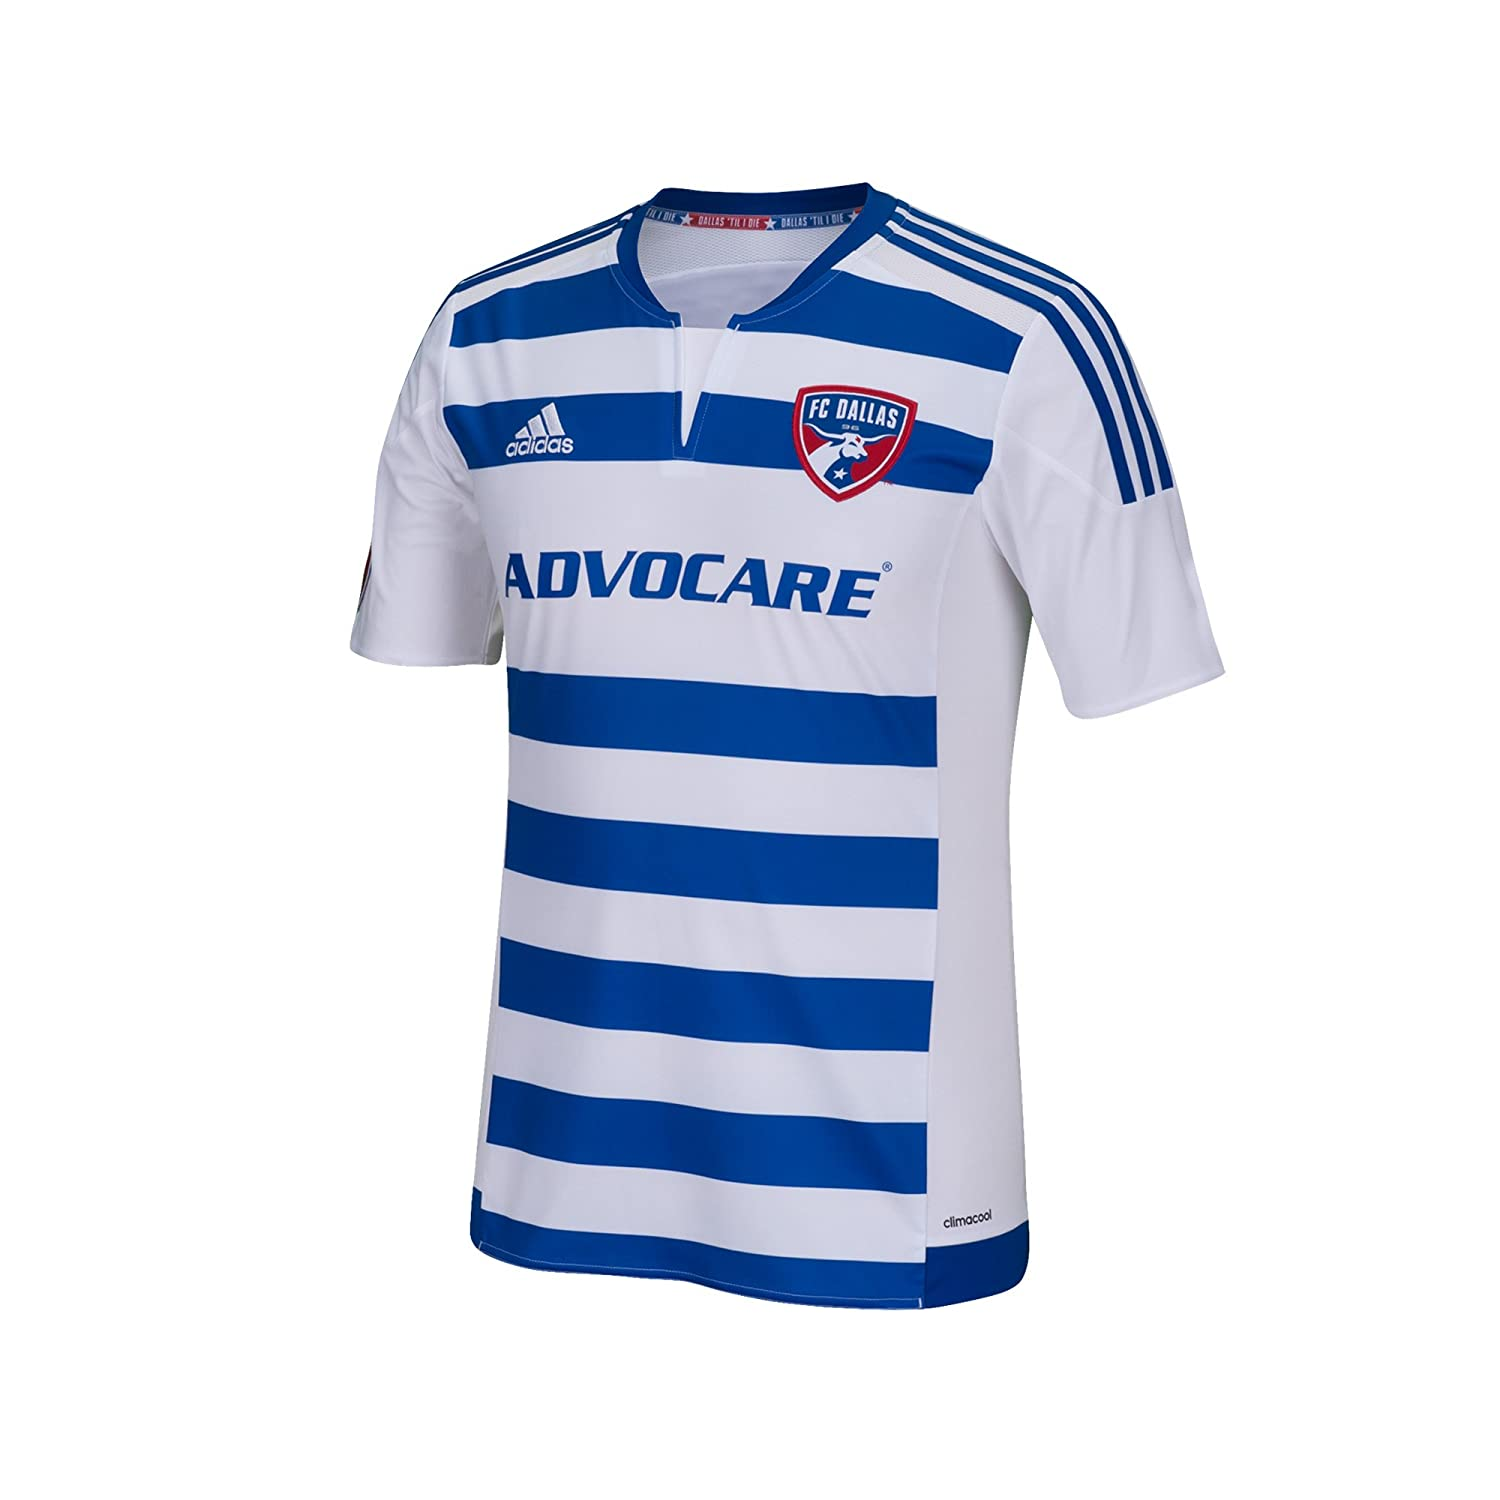 d3e24129b00 Amazon.com : MLS FC Dallas Boys Youth Replica Short Sleeve Jersey, Medium,  White : Sports & Outdoors